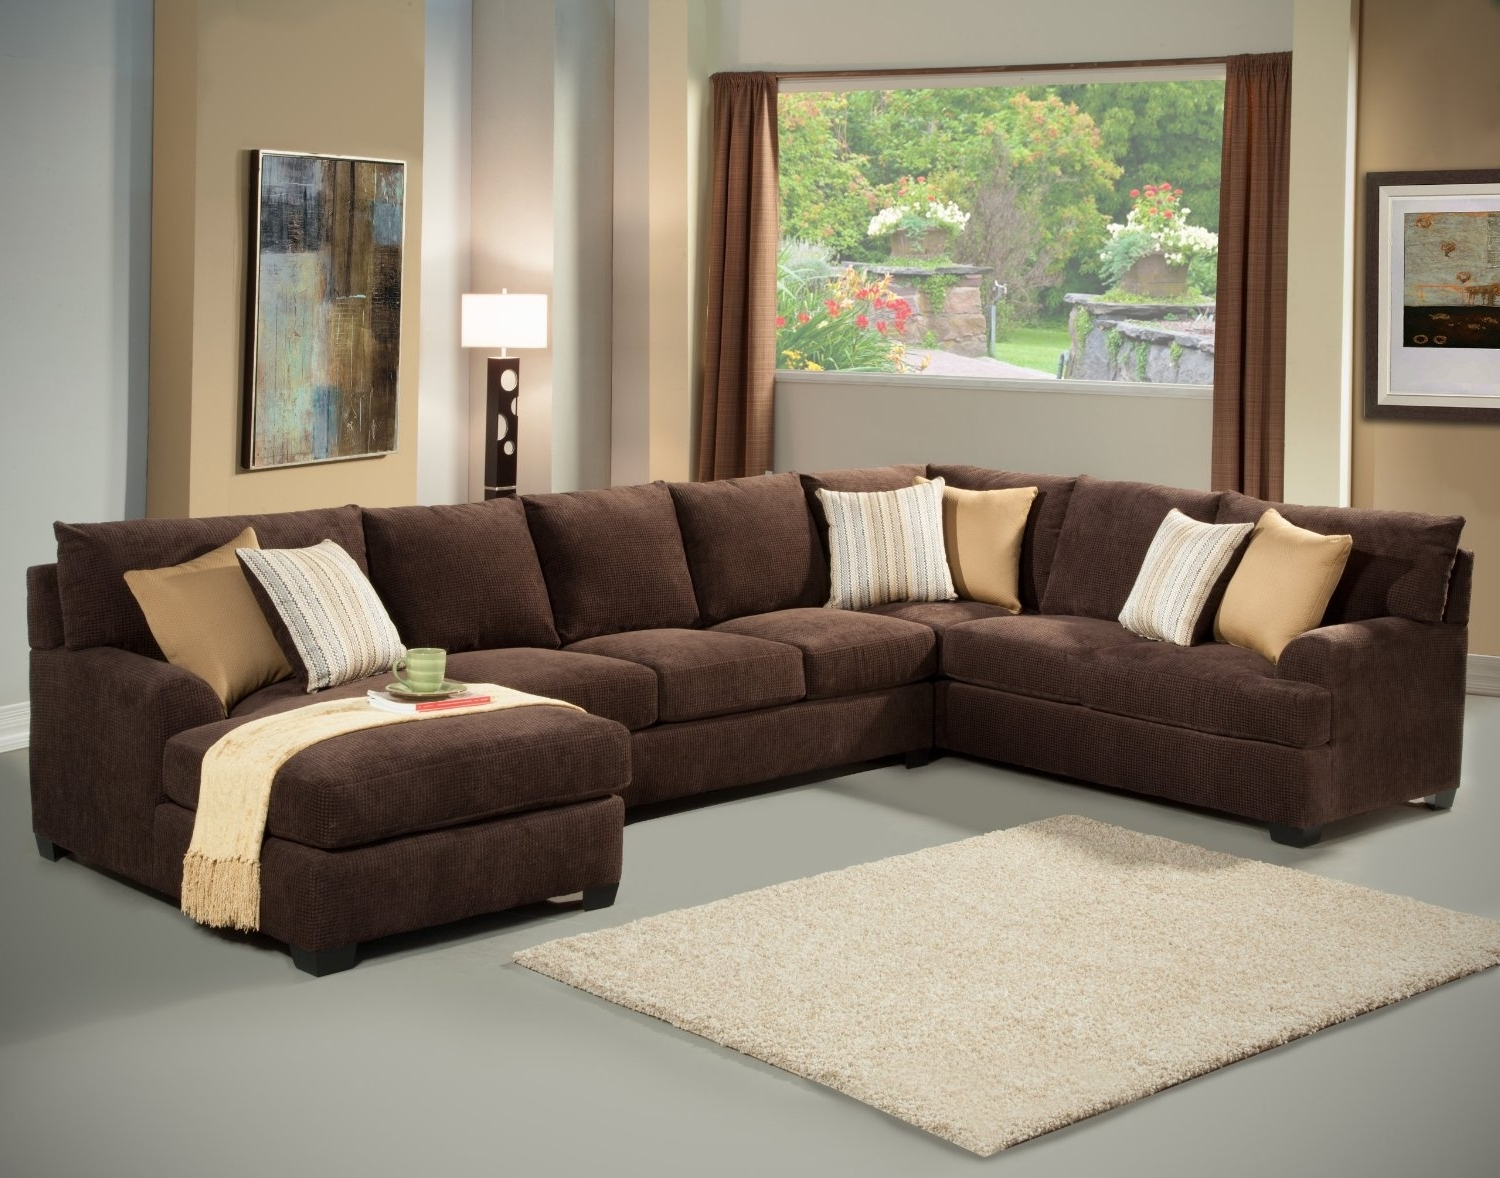 Most Recent Cream Sectionals With Chaise Intended For Furniture (View 10 of 15)